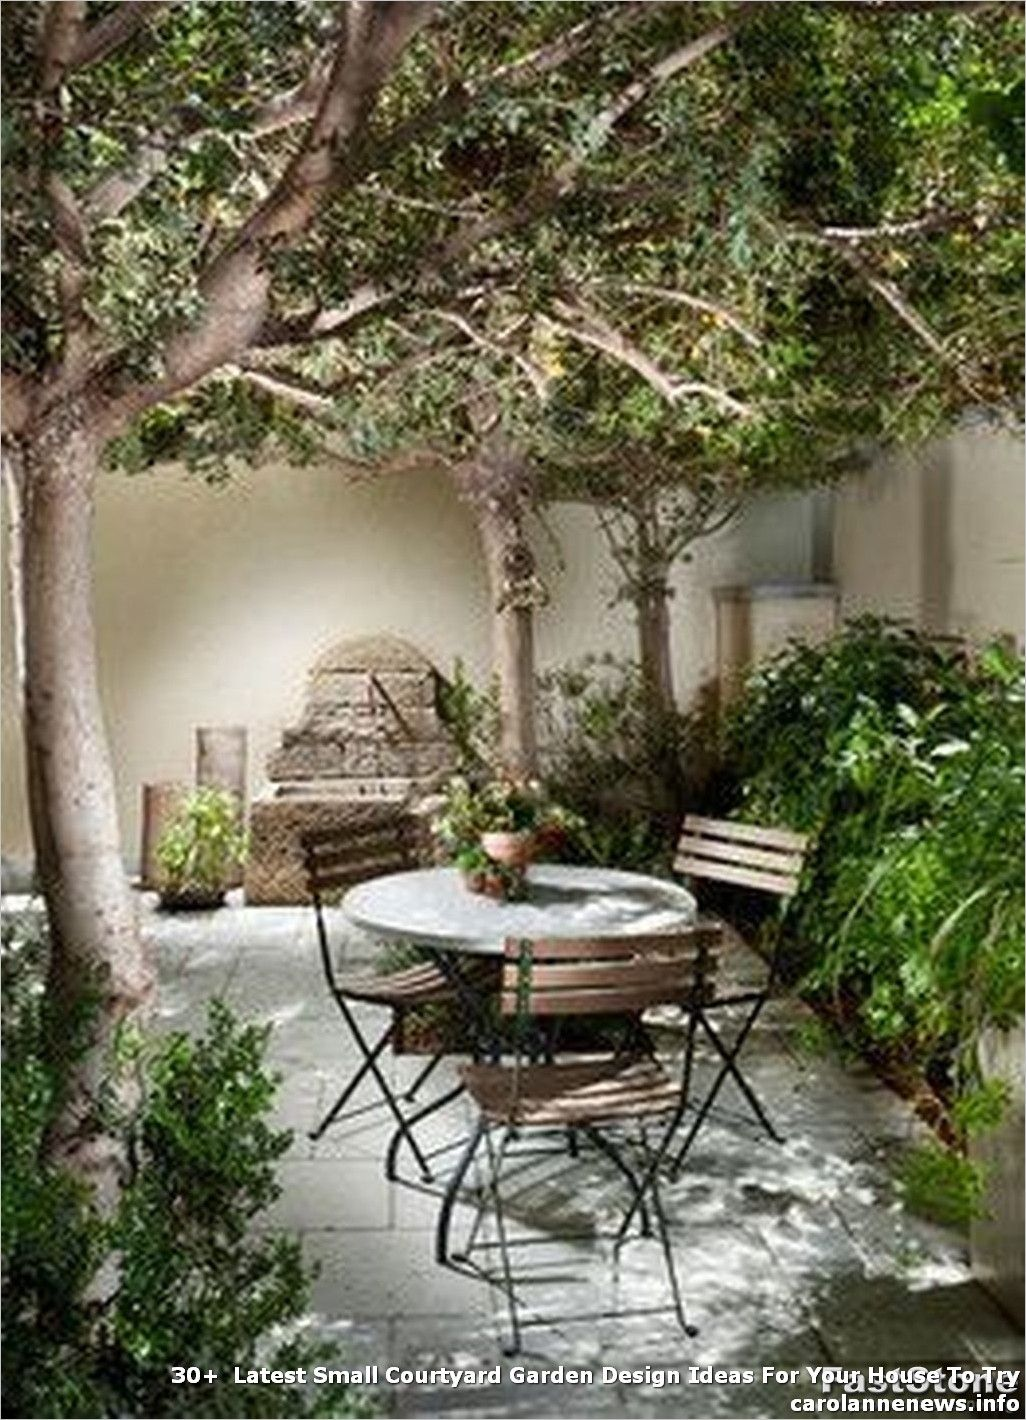 30 Latest Small Courtyard Garden Design Ideas For Your House To Try Page 18 B In 2020 Courtyard Gardens Design Small Courtyard Gardens Indoor Courtyard